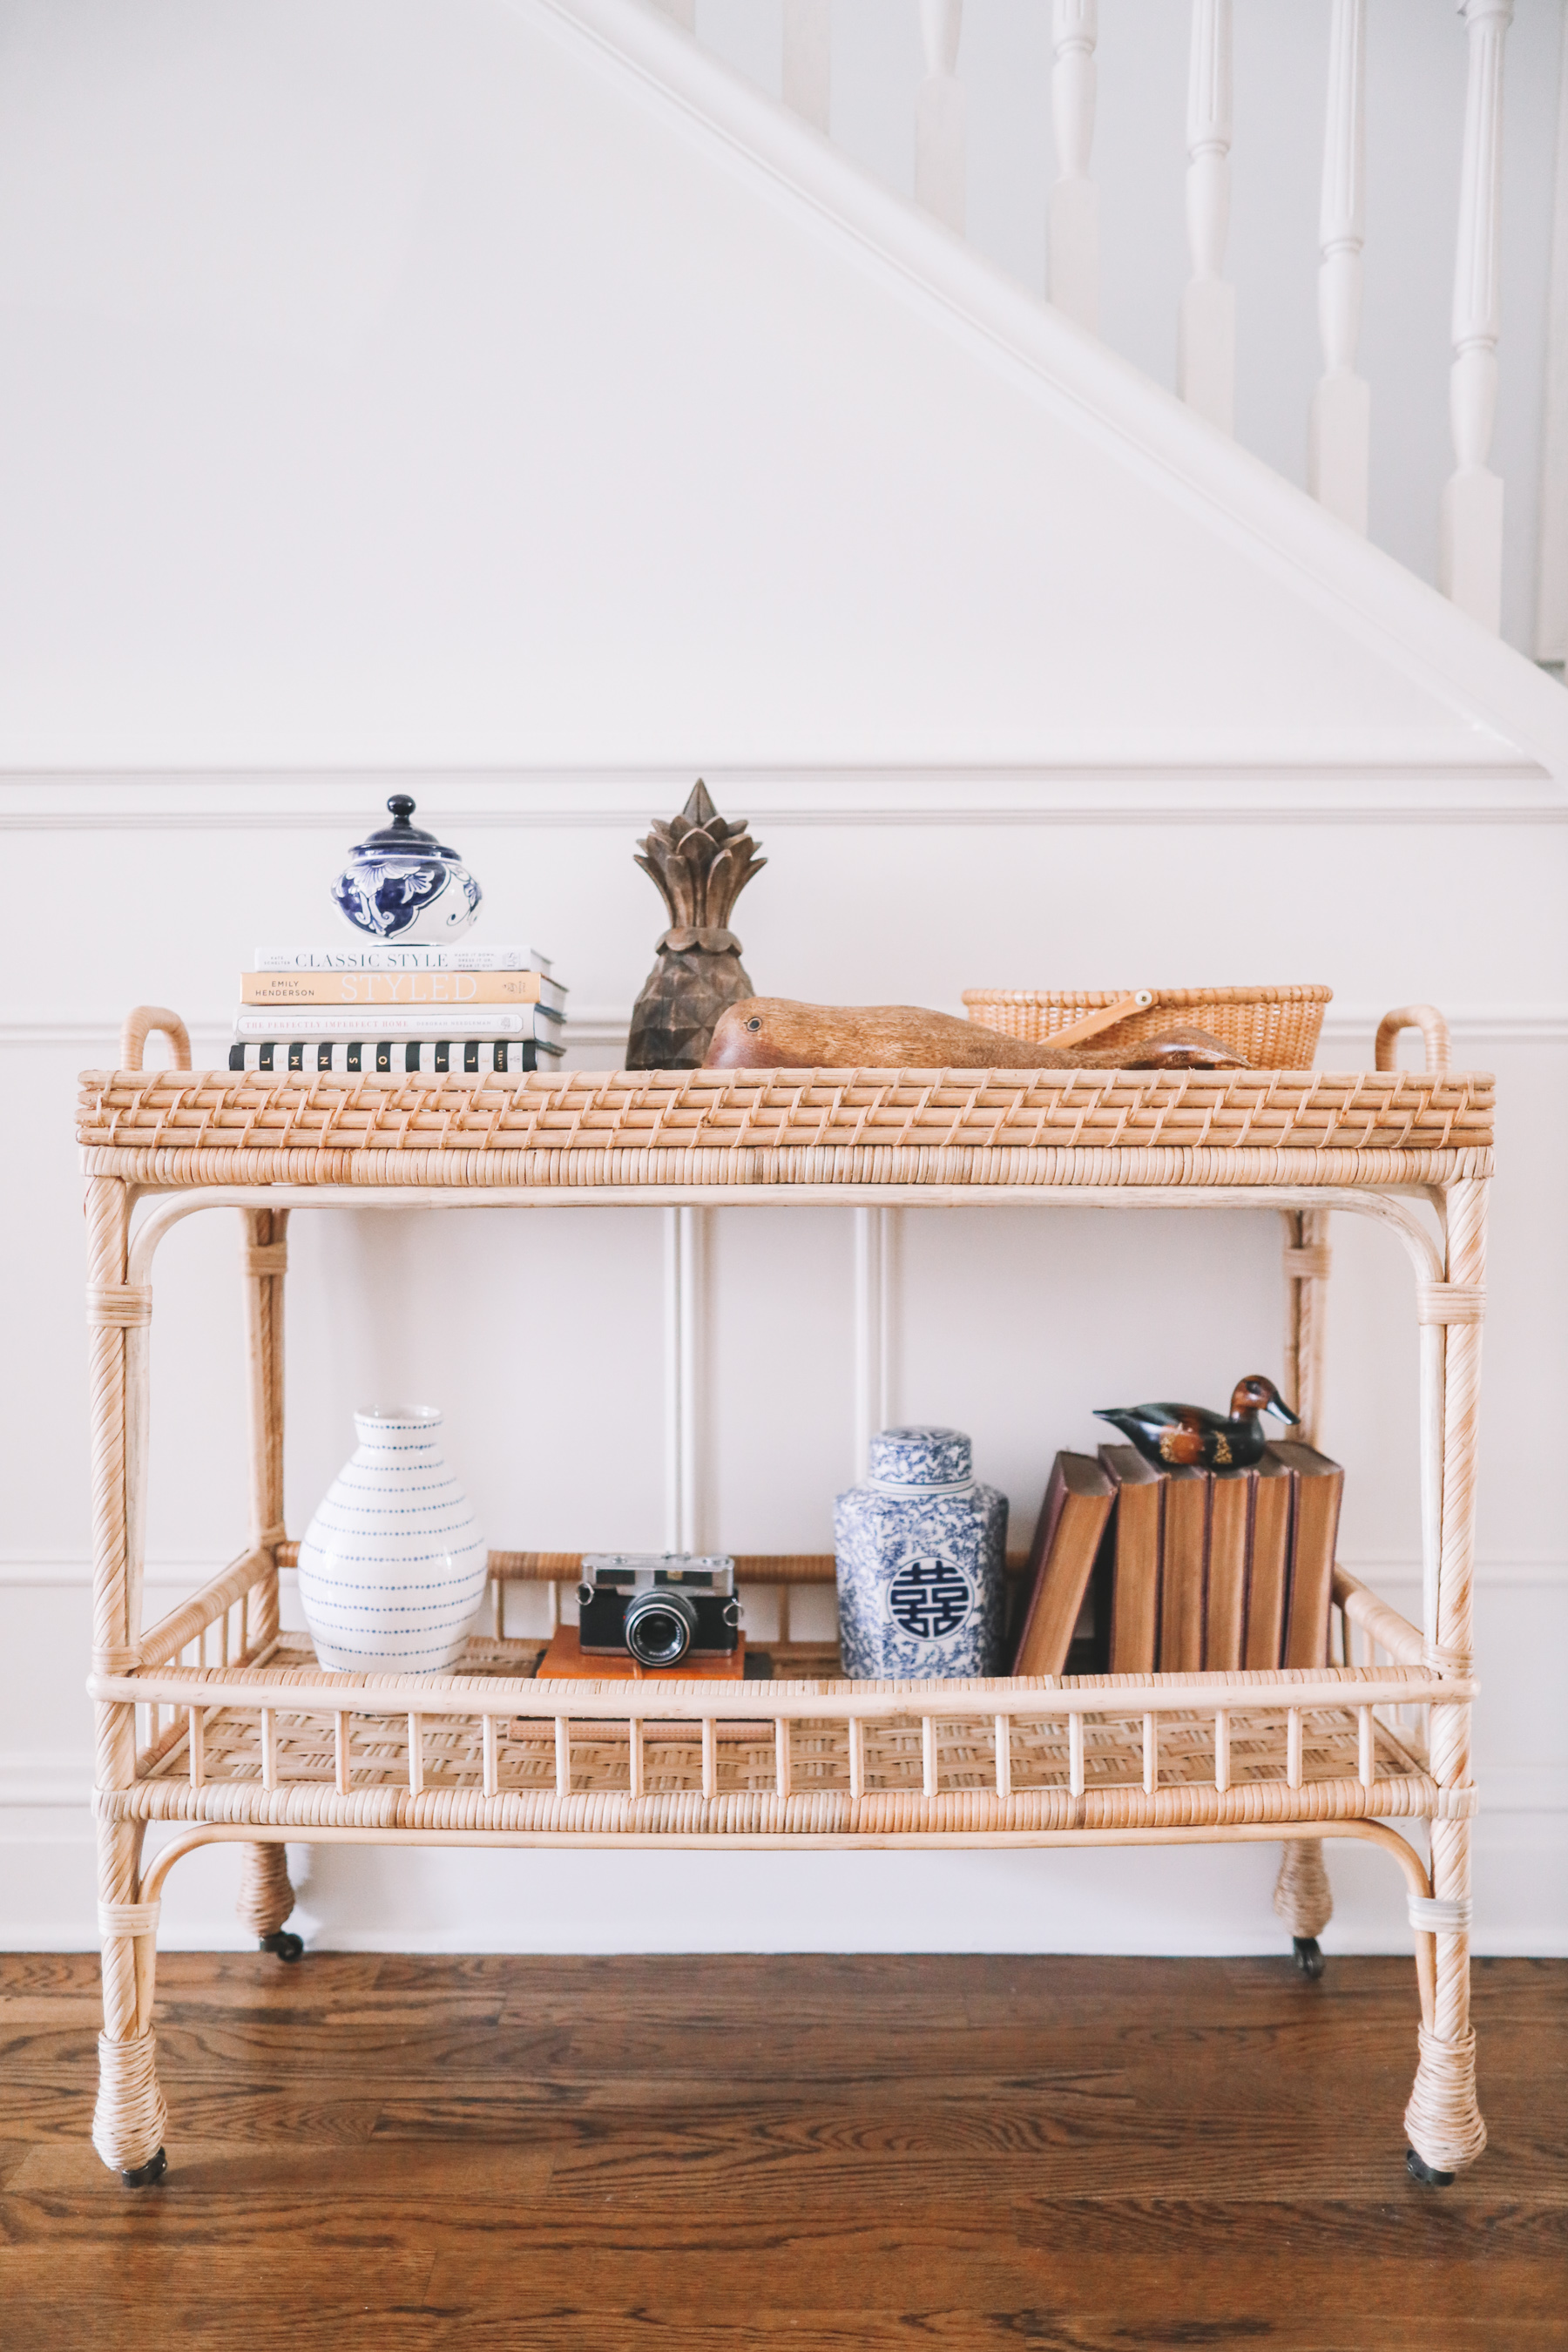 Styling A Bar Cart Kelly In The City Lifestyle Blog